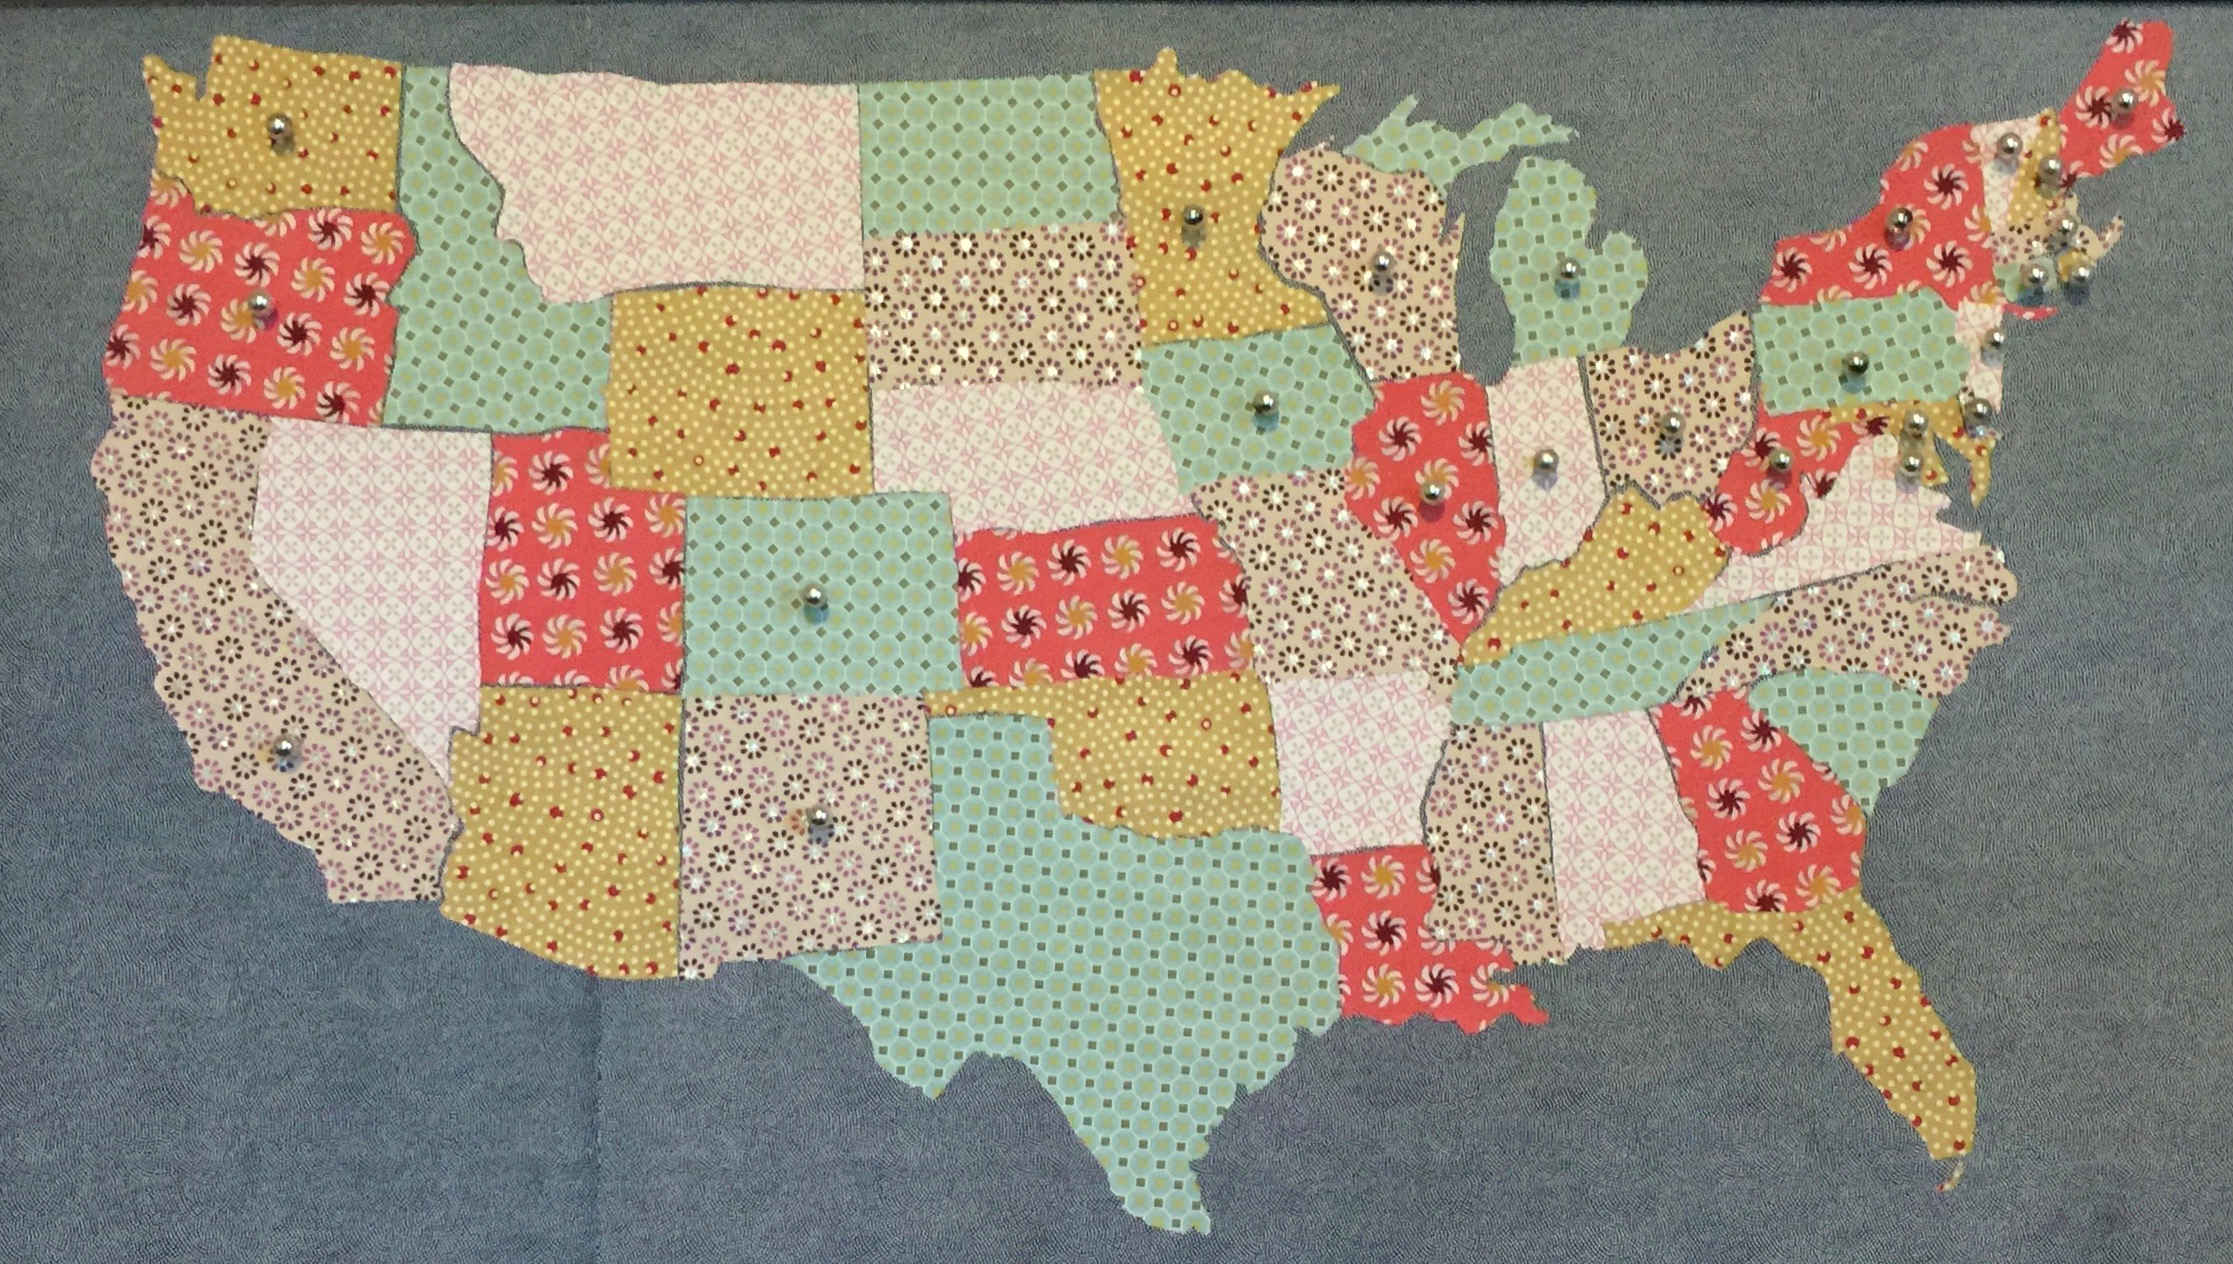 Crafty Project: Mapping the U.S.